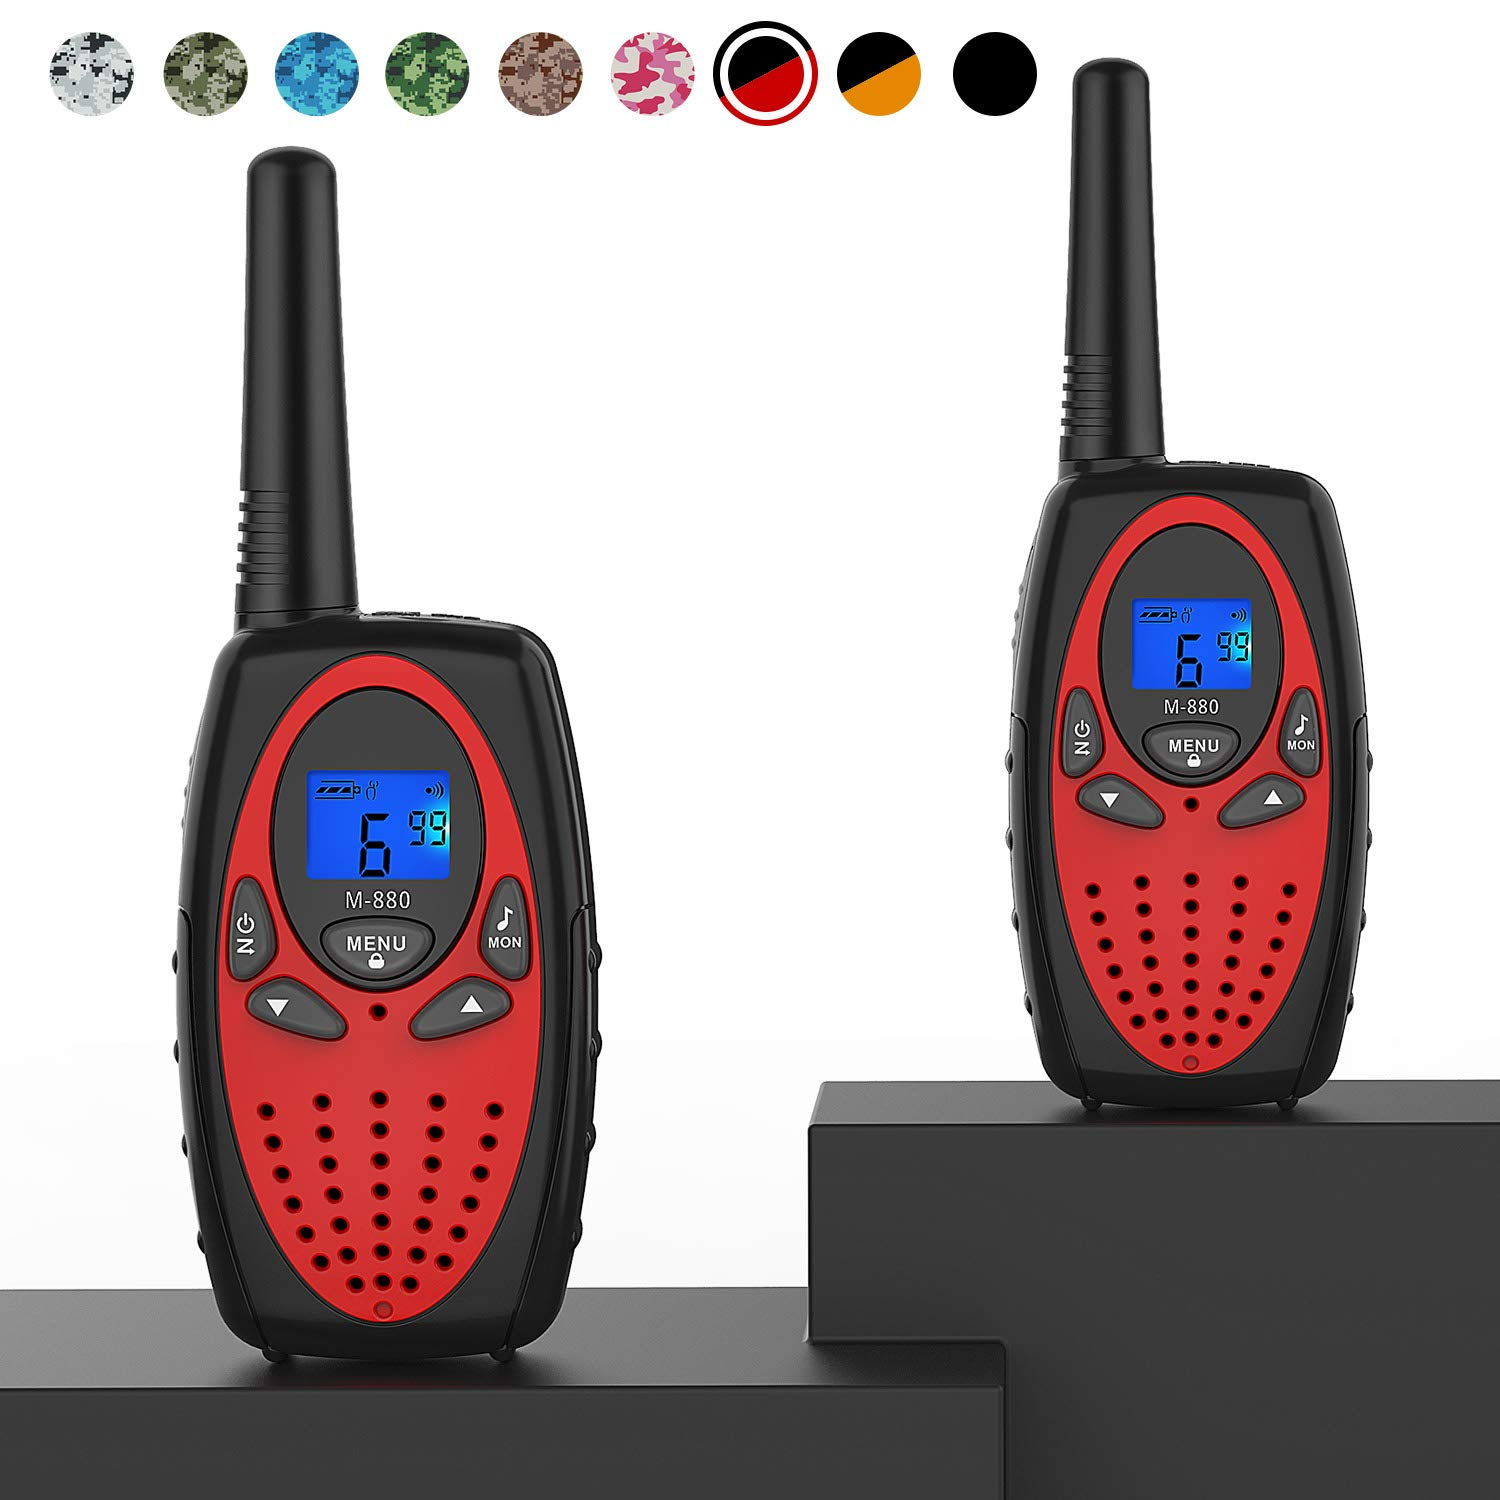 Walkie Talkies Long Range, Topsung M880 FRS Two Way Radio for Adults with Mic LCD Screen/Durable Wakie-Talkies with Noise Cancelling for Men Women Outdoor Adventures Cruise Ship (Red 2 in 1)